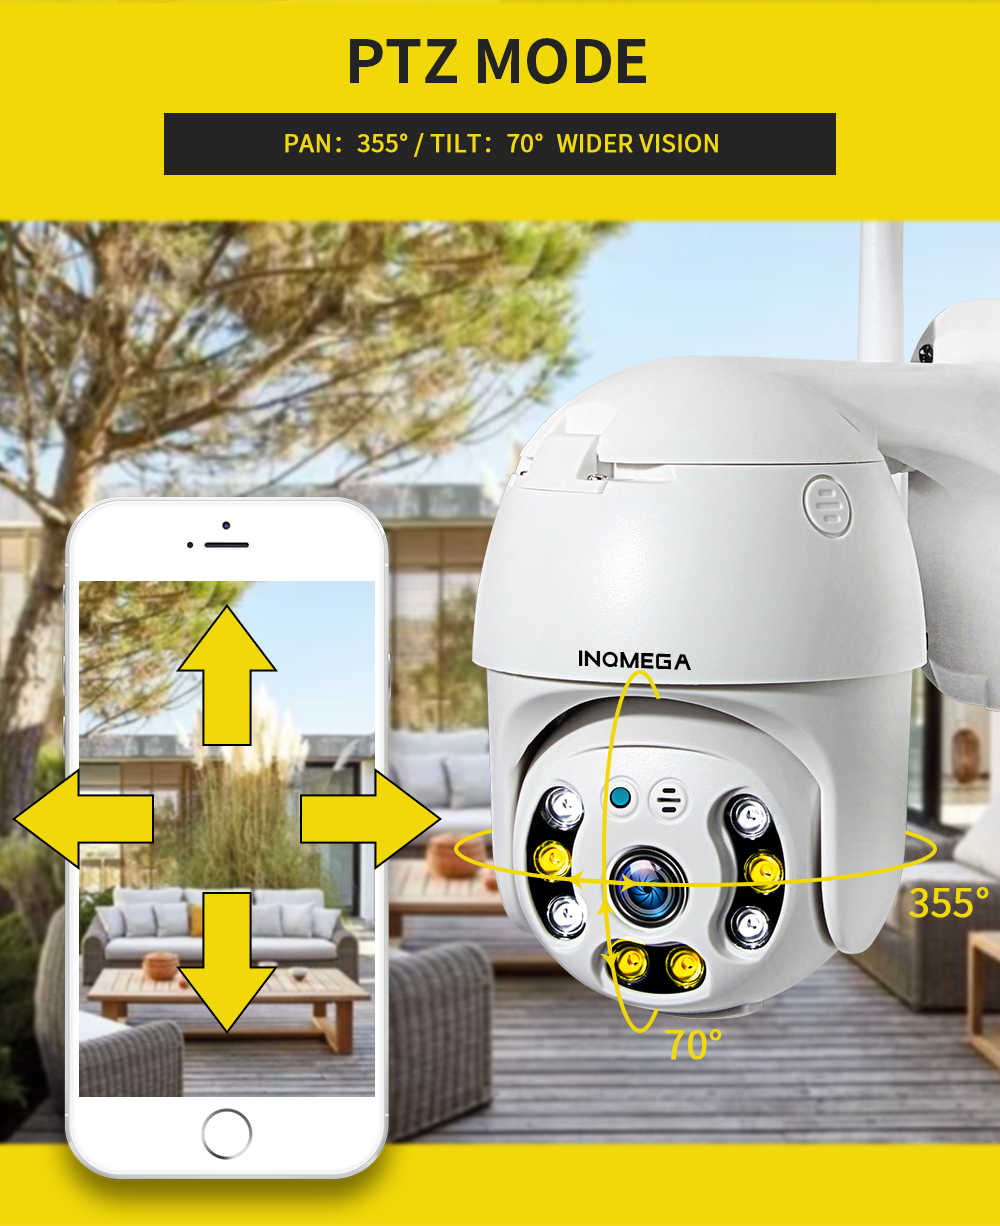 INQMEGA 1080P PTZ  Dome Camera Auto Tracking Outdoor Cloud Storage Wireless  Camera  IP65 Waterproof  Night Vision Full Color